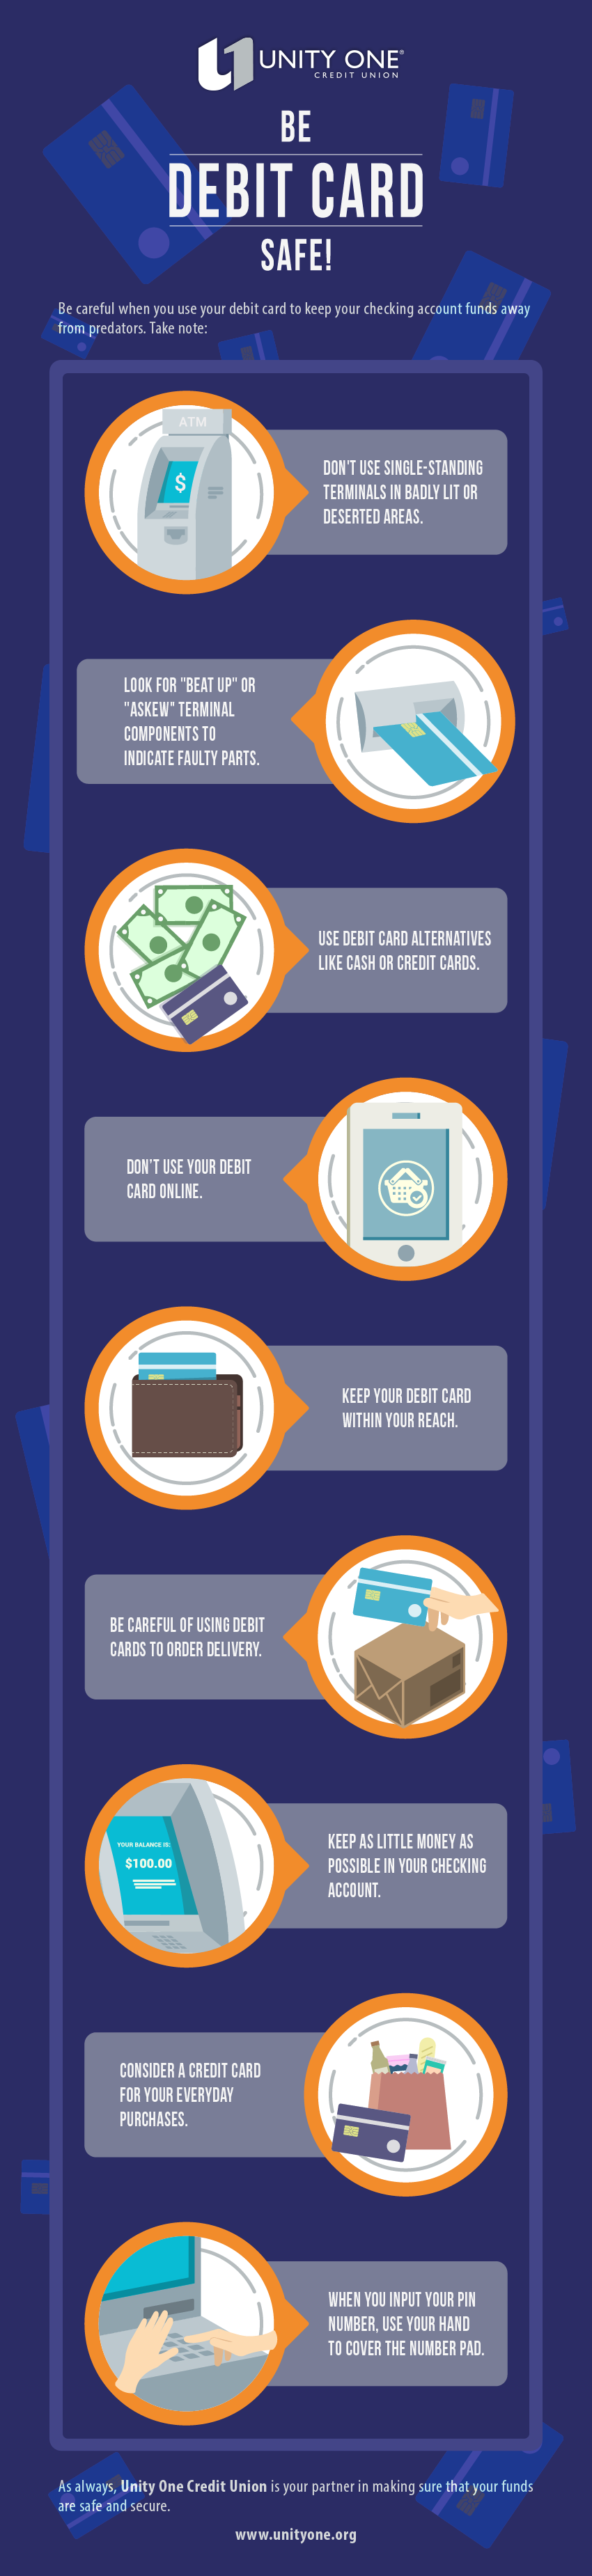 debit card fraud infographic